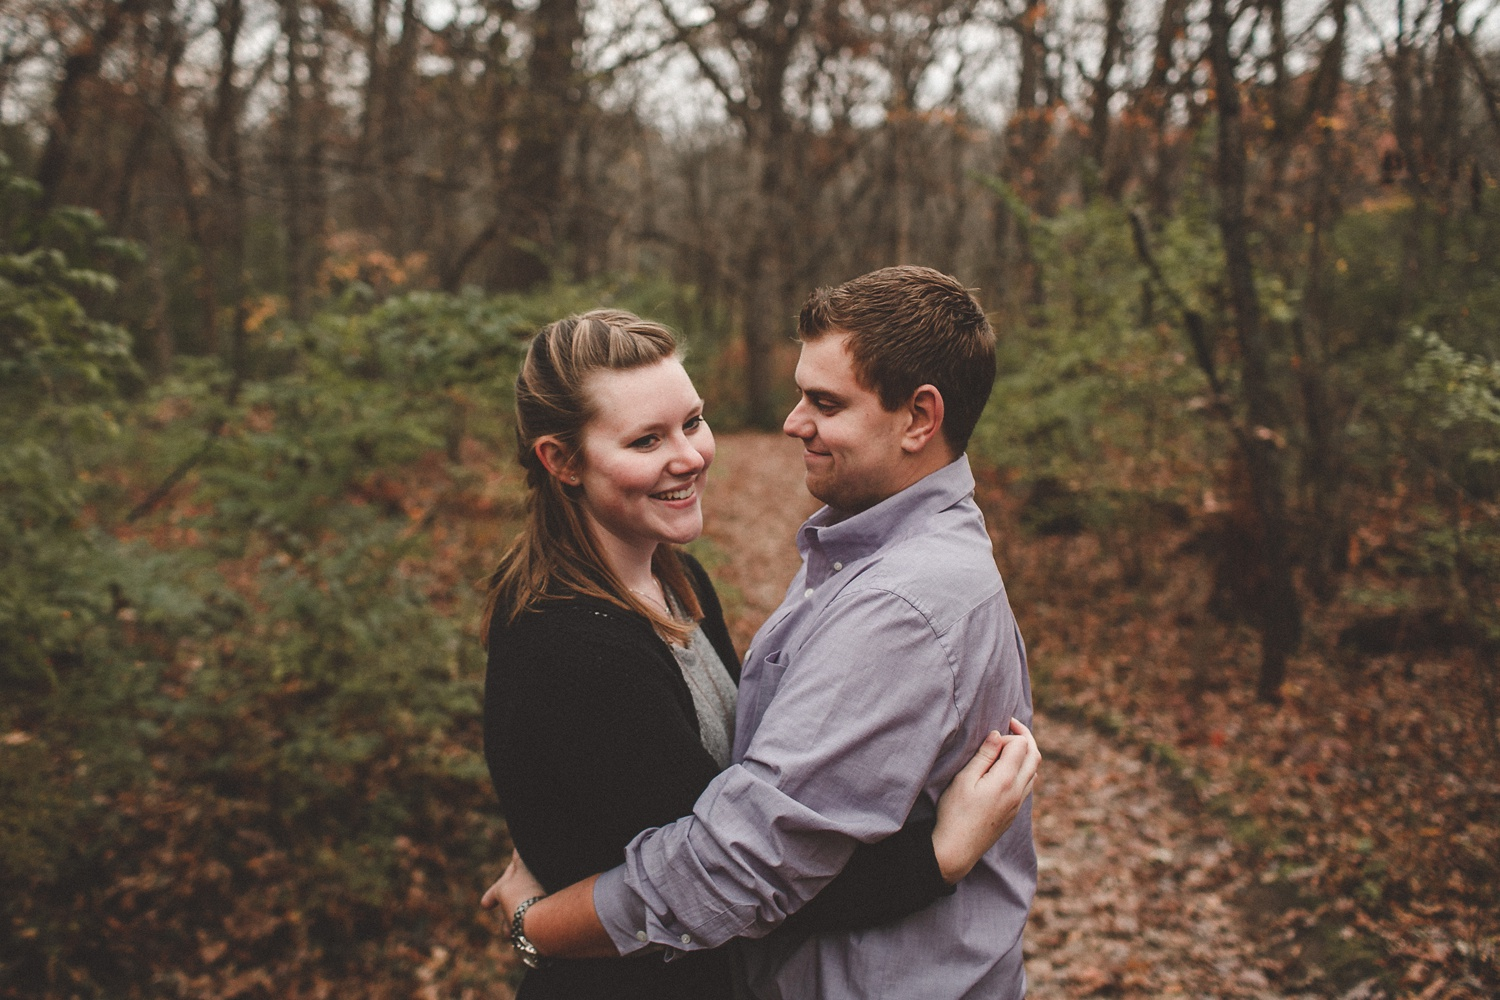 rock_cut_state_park_rockford_IL_engagement_photographer_0034.jpg